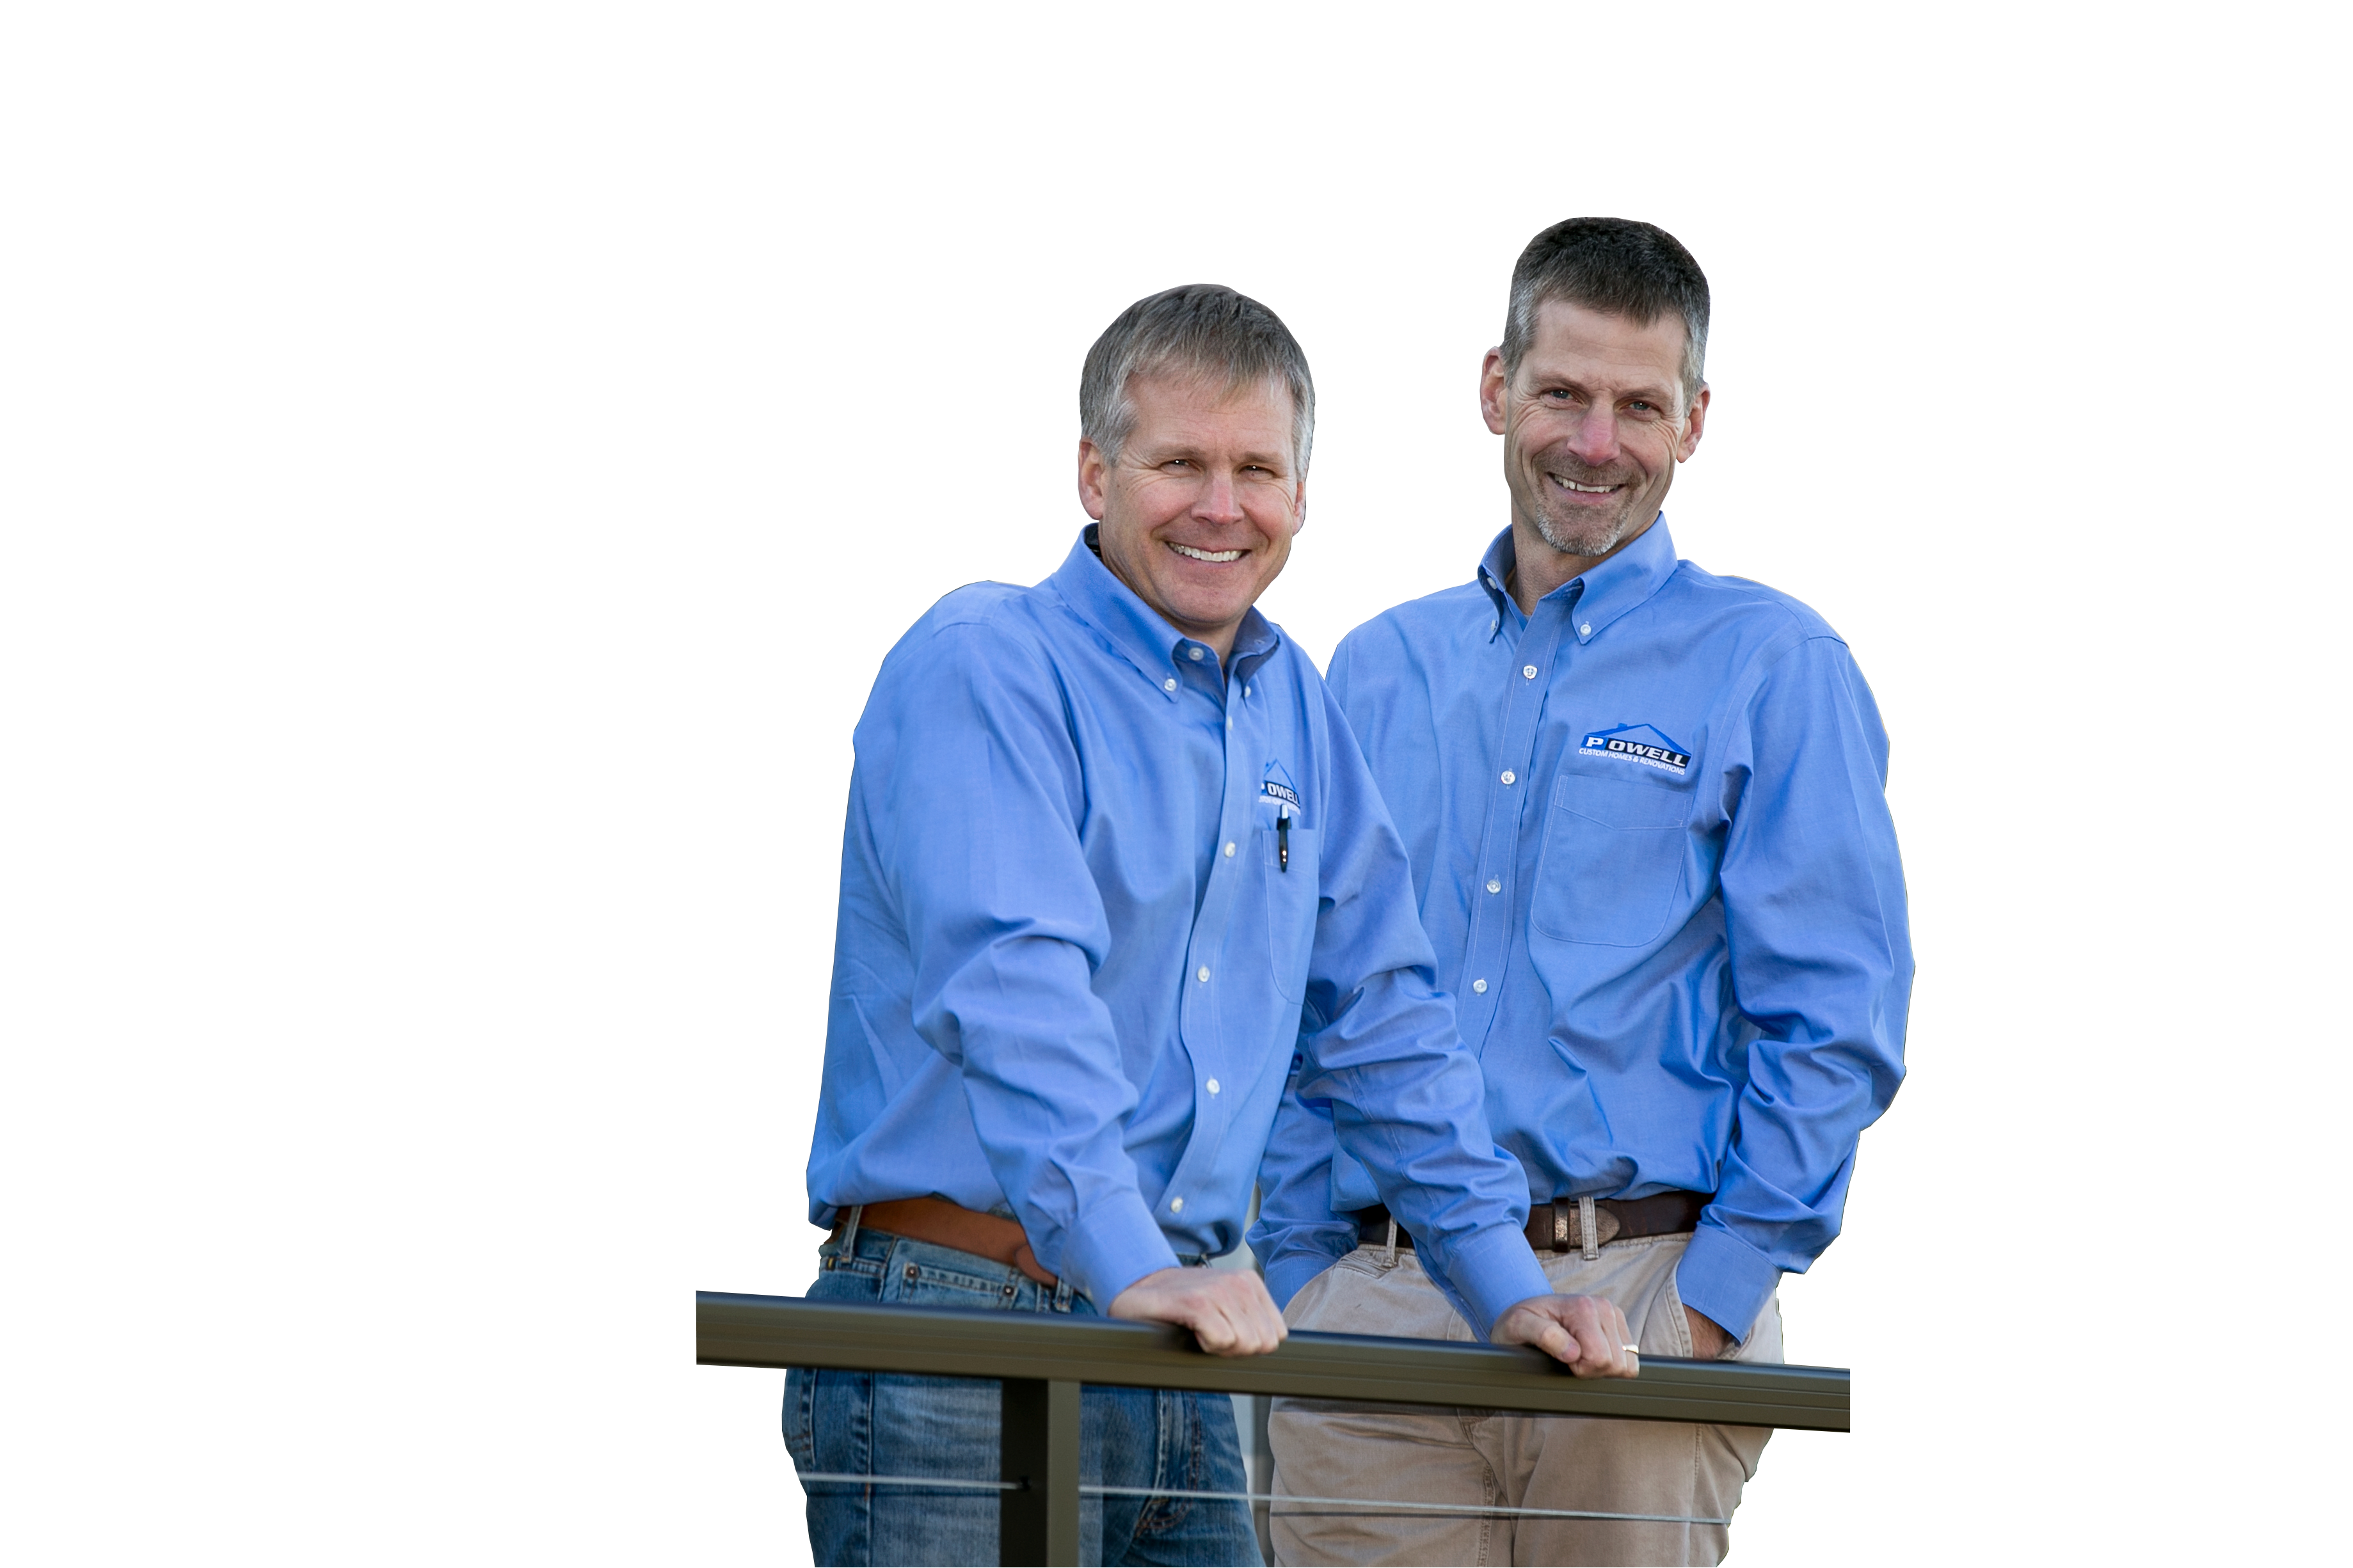 powell_brothers-2015-2-no-background.png